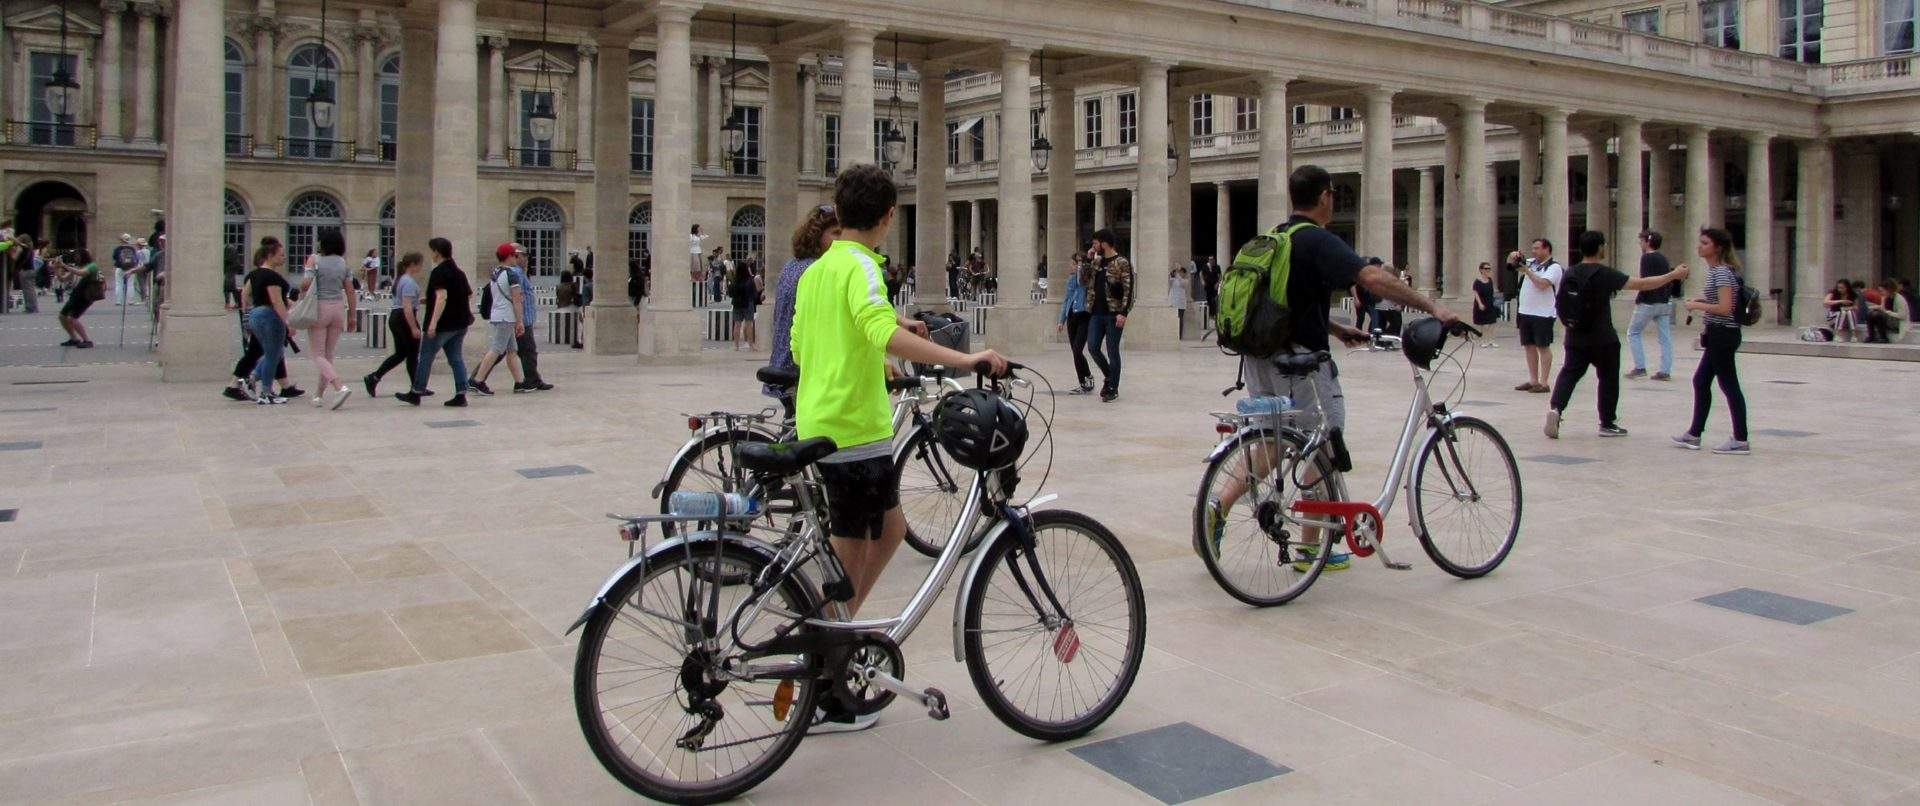 paris-bike-tour-kids-fun-louvre